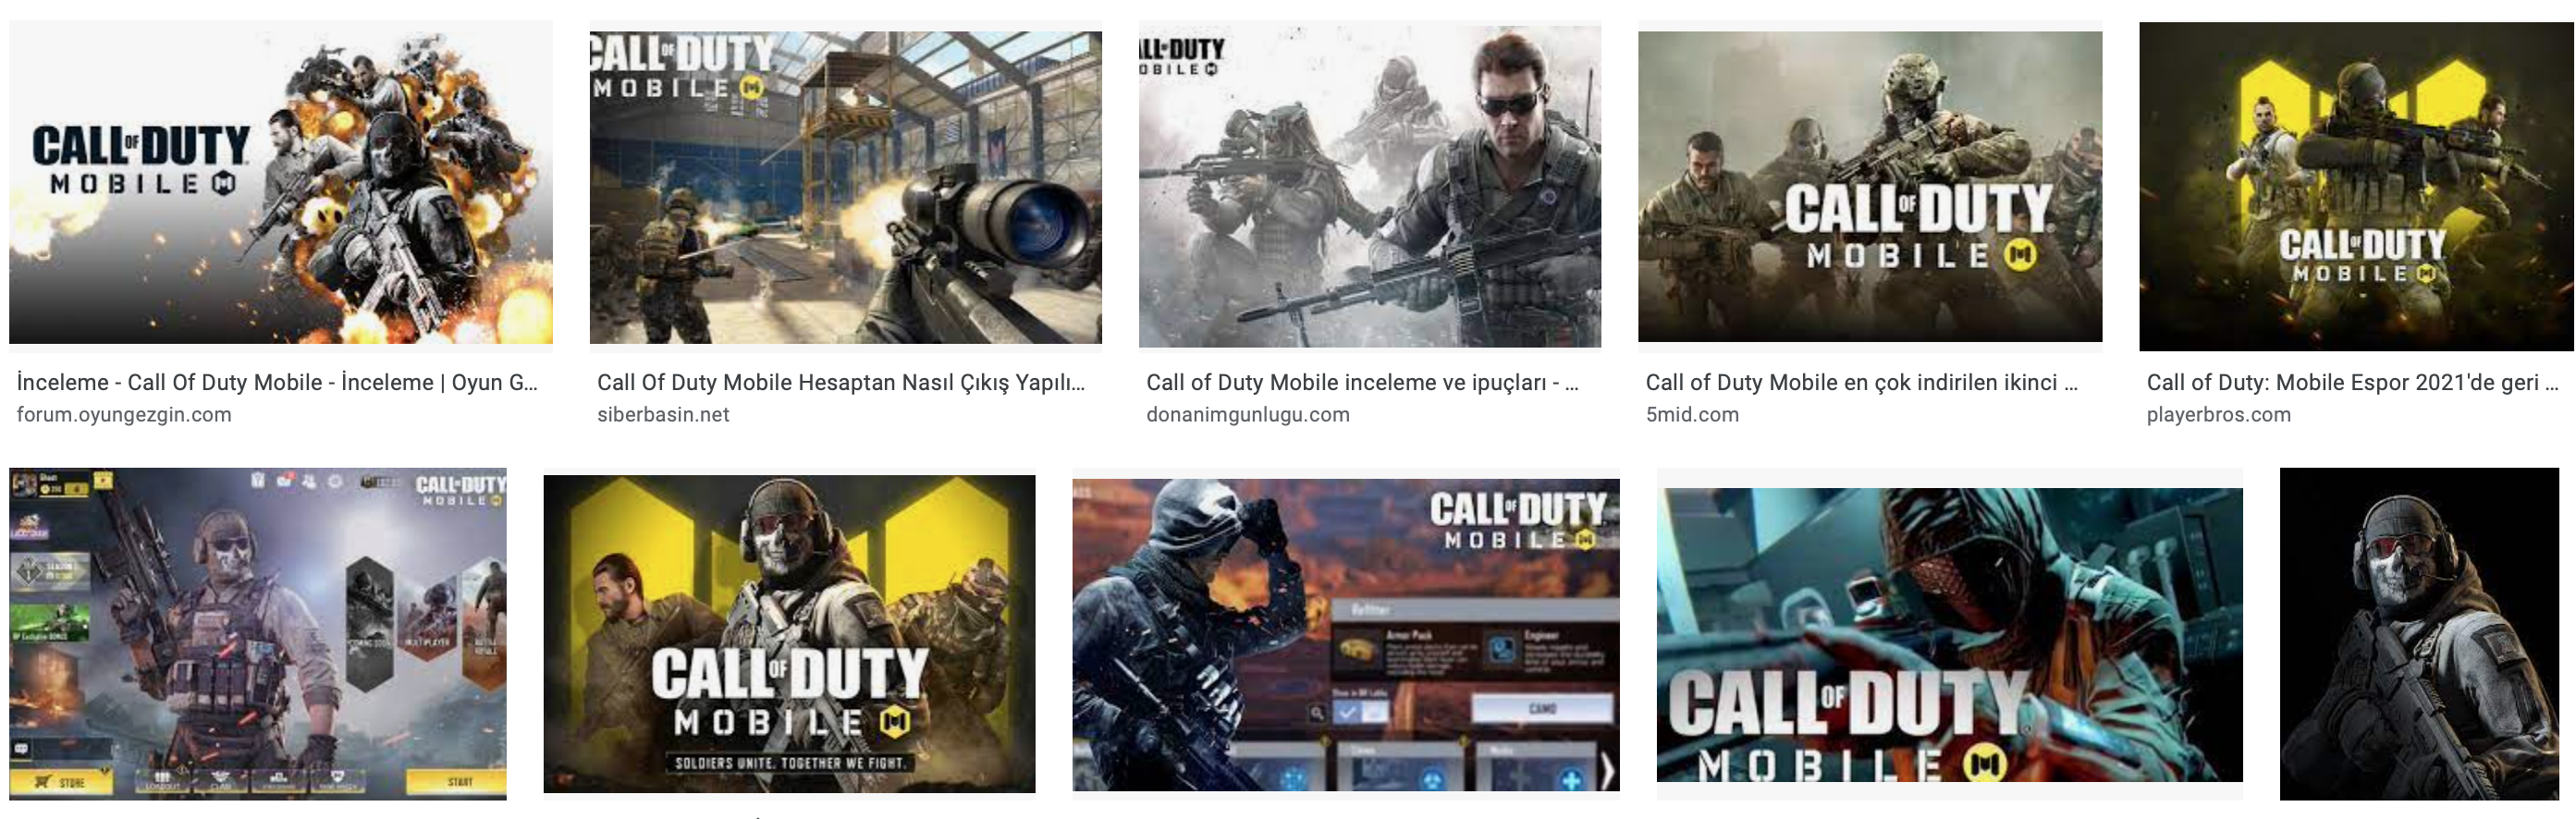 Call Of Duty Mobile Apk 2021